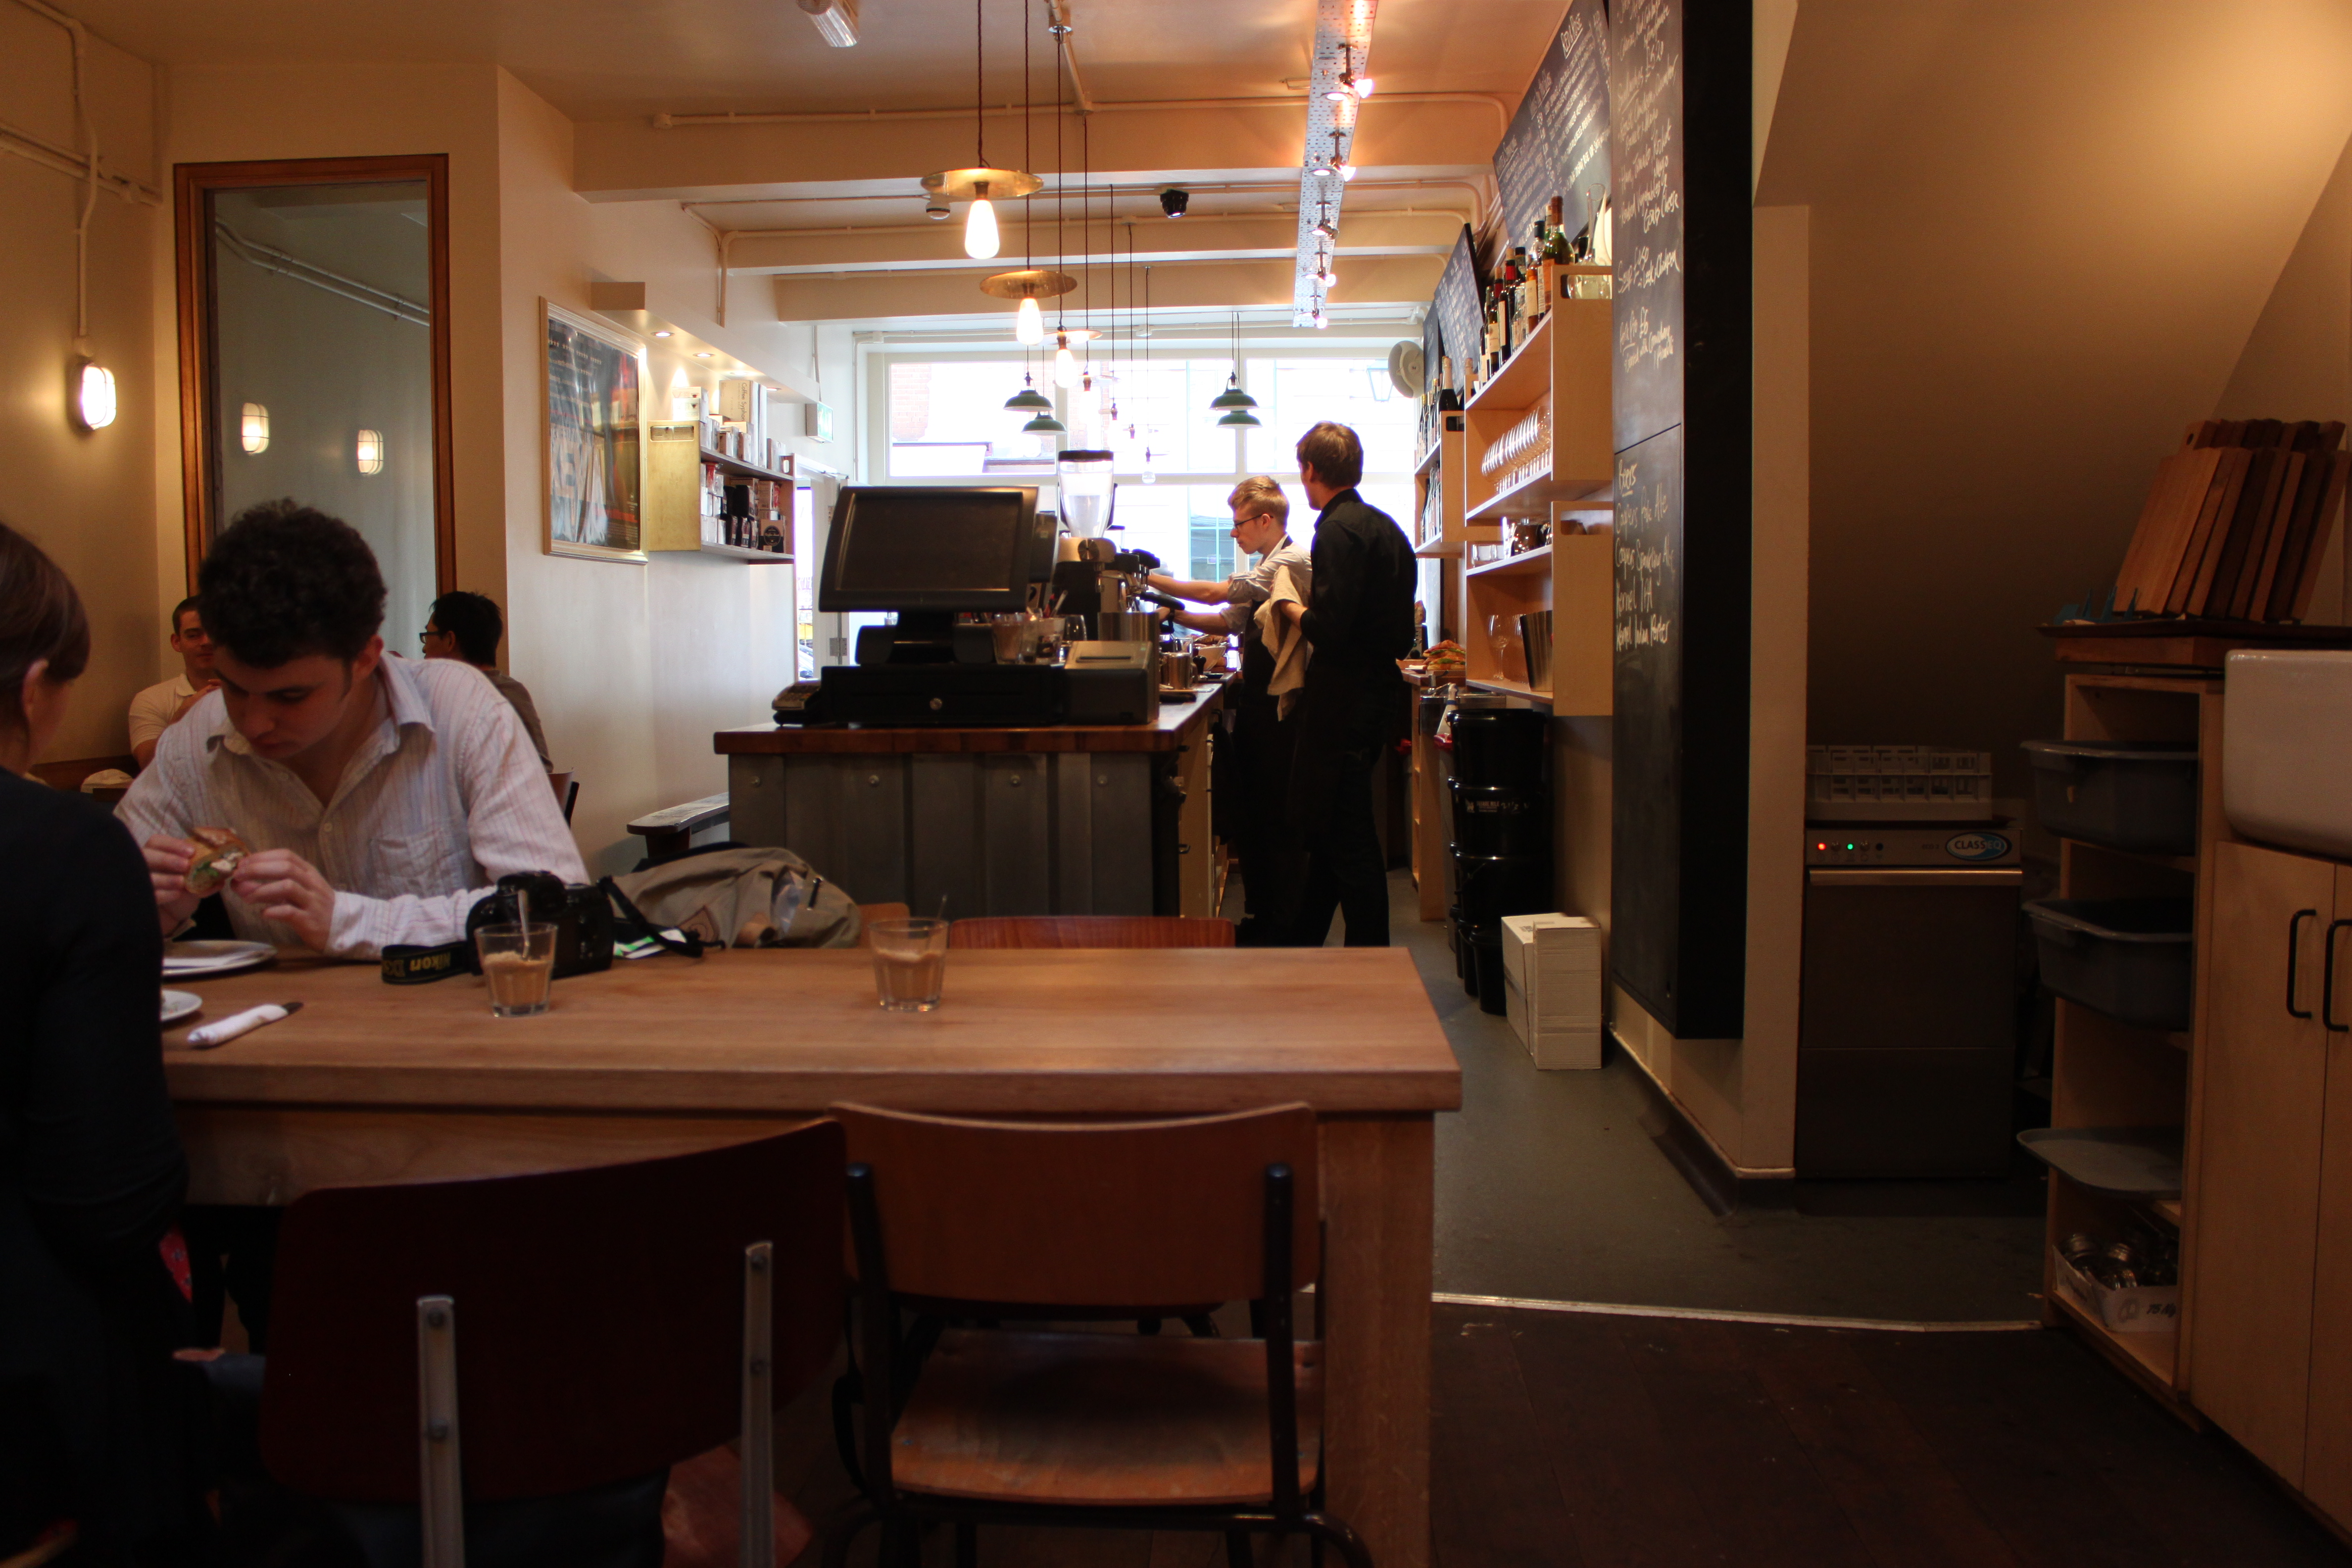 Kitchen Italia Covent Garden Notes Music Coffee Covent Garden Review Ln Lm